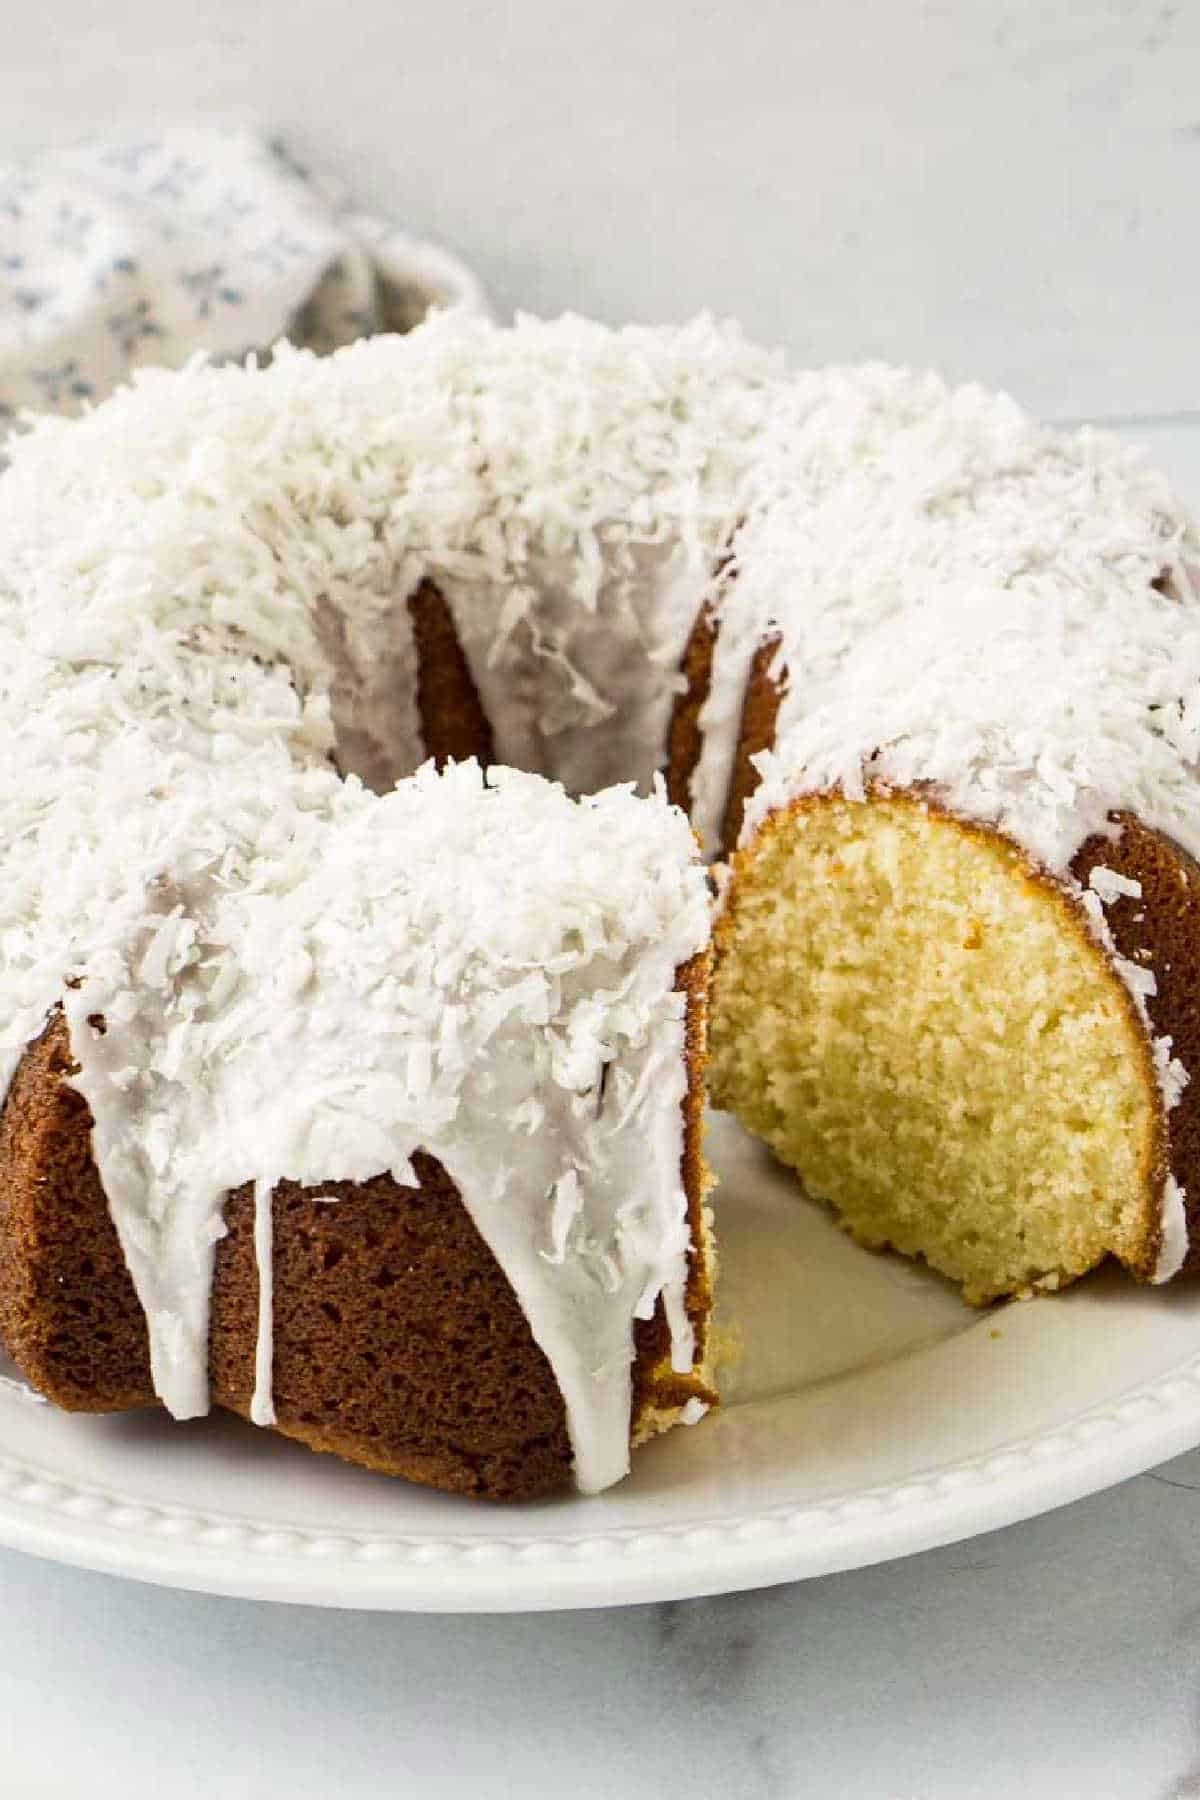 Bundt Cake with slice cut out and topped with flaked coconut